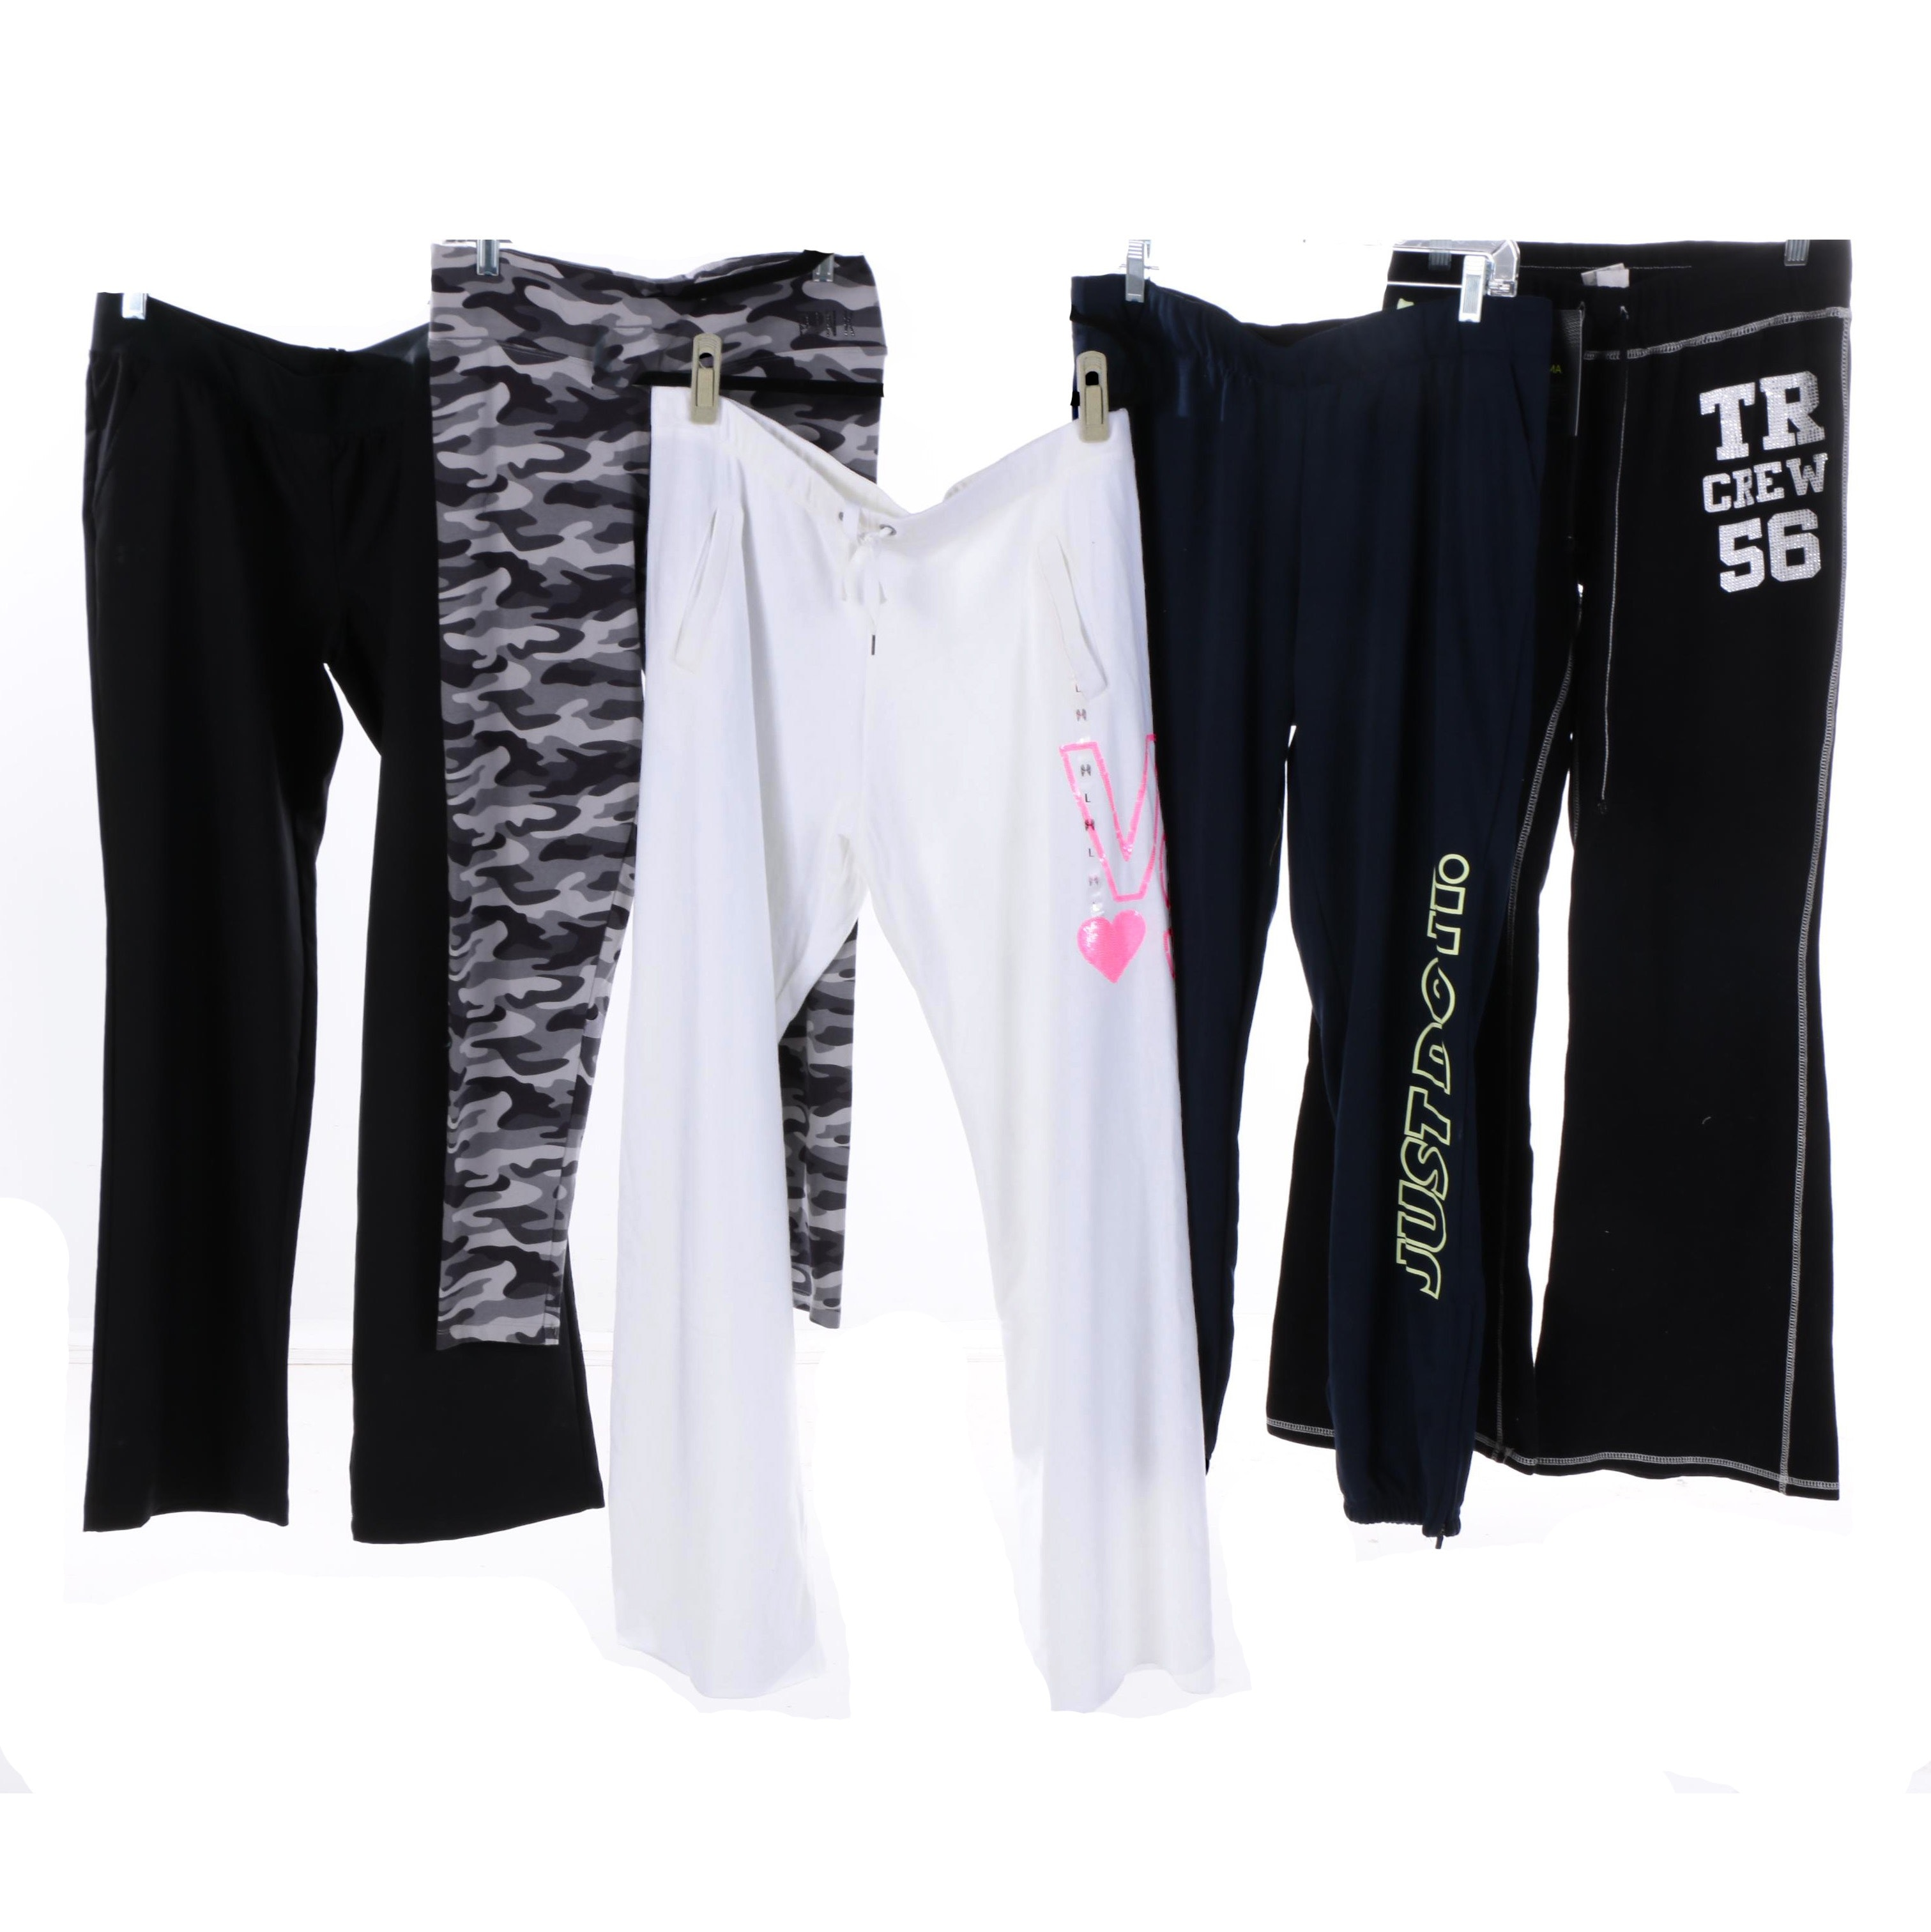 Women's Athletic Shorts and Pants Including Under Armour and Victoria's Secret